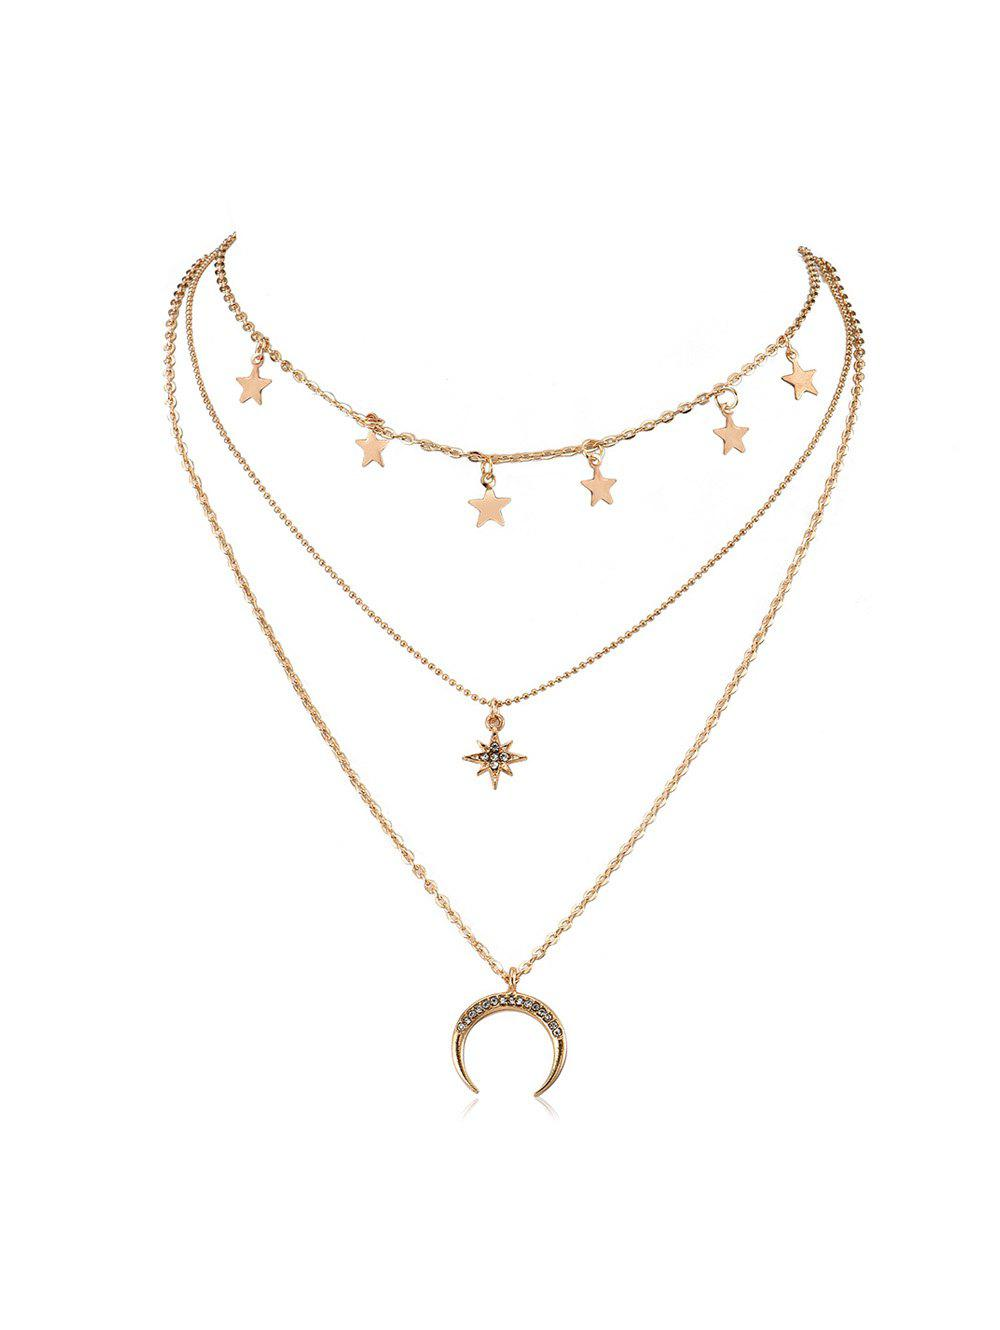 Collier Superposé Etoile Lune avec Strass Or